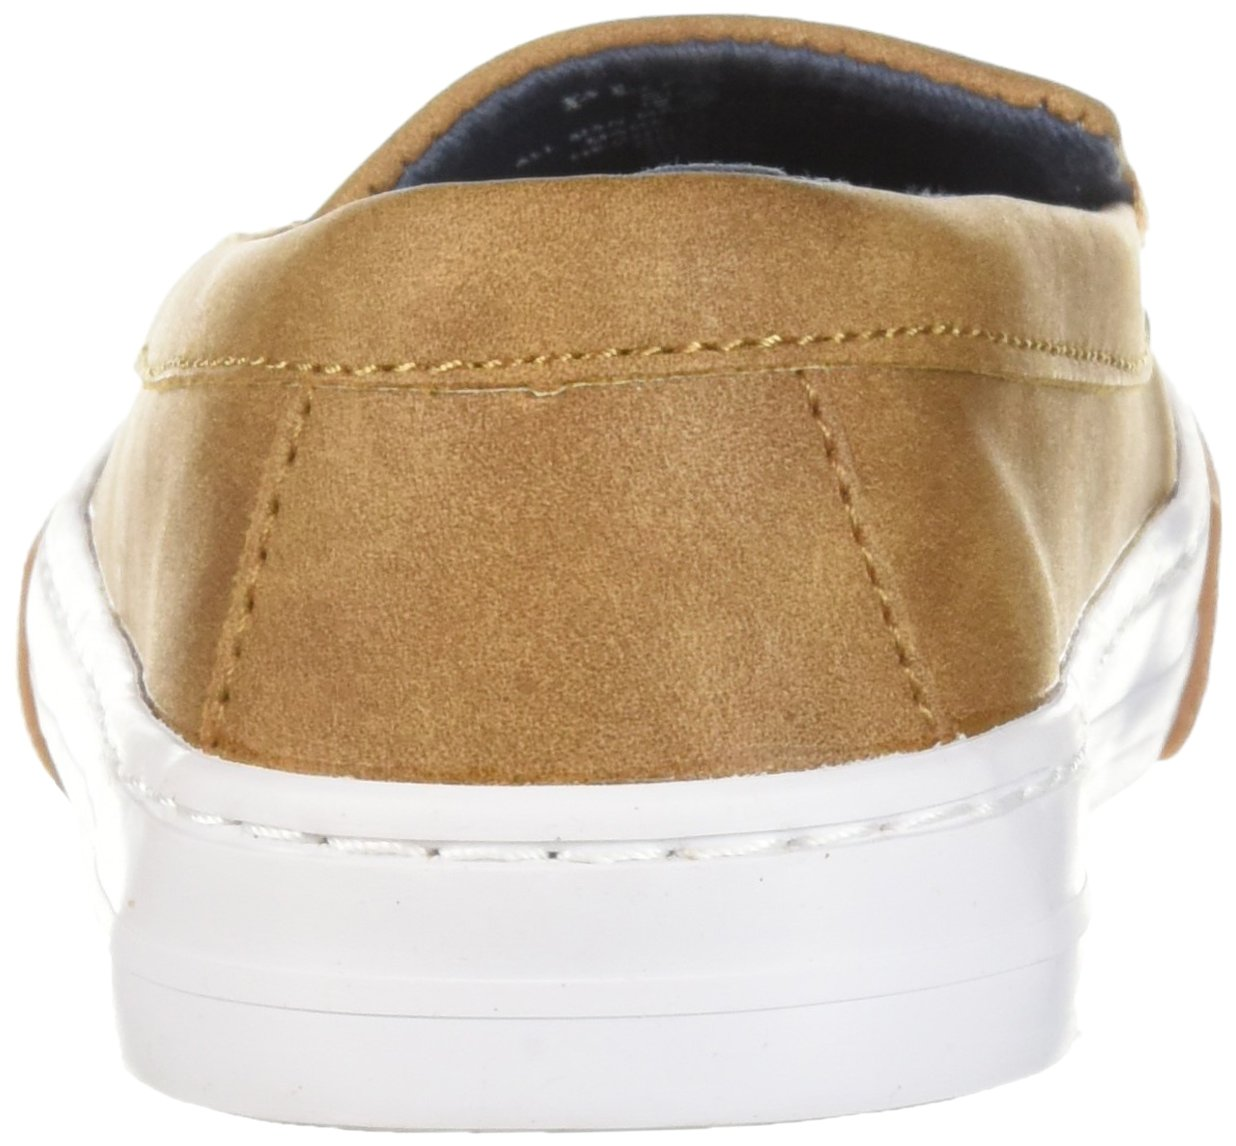 The Children's Place Kids' Sneaker,TAN-BB Indie,12 M US Little Kid by The Children's Place (Image #2)